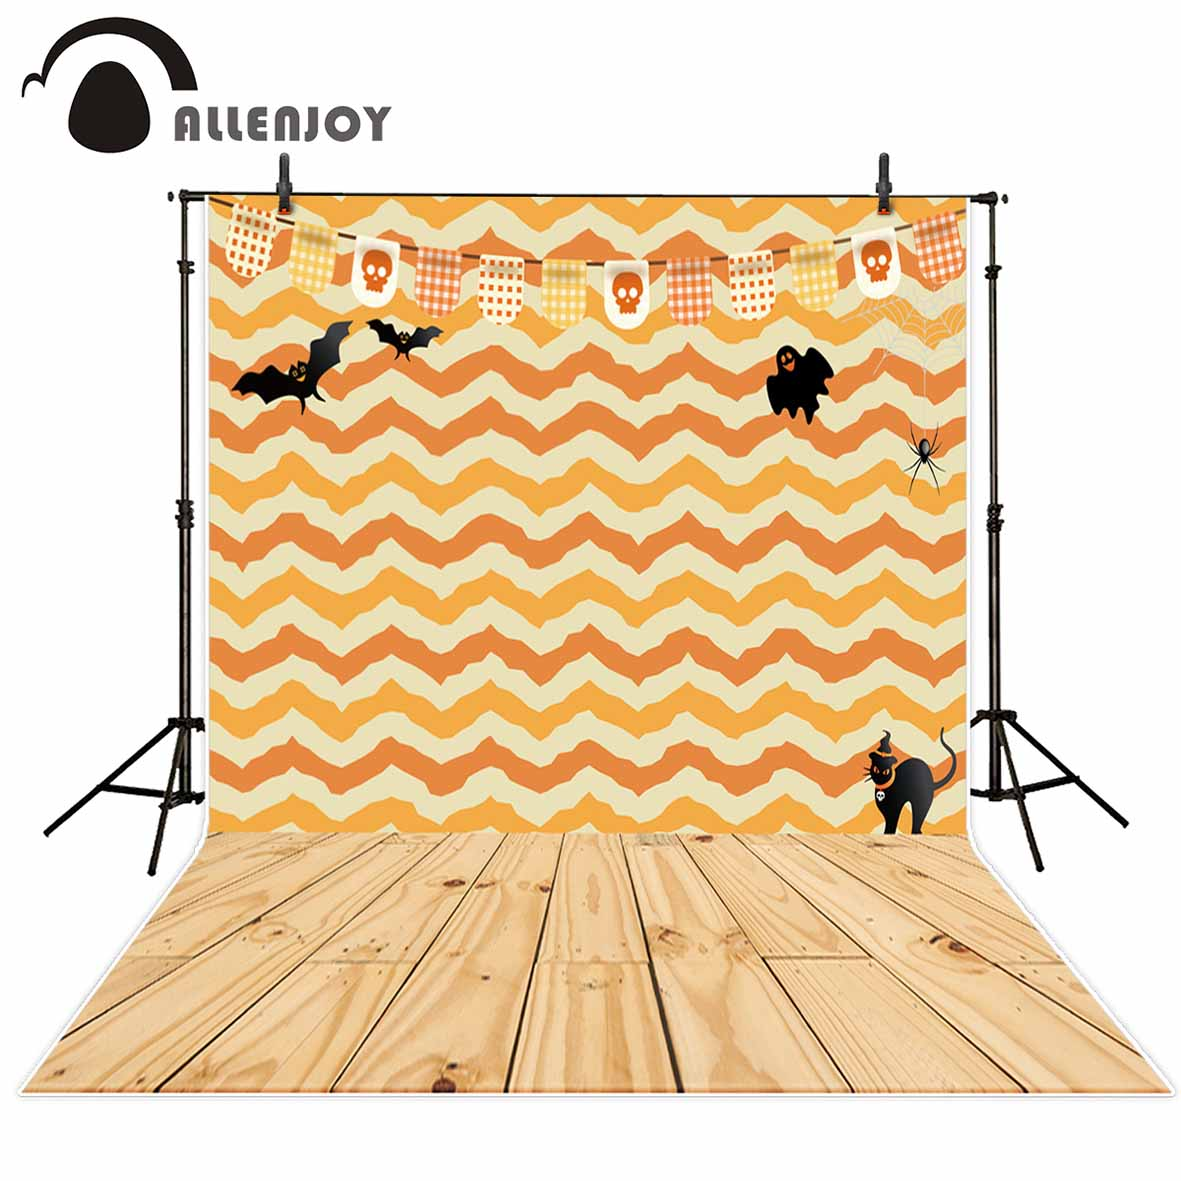 Allenjoy photografia background Pattern Bats Black Cat Warm Halloween backdrop photocall professional custom vintage background